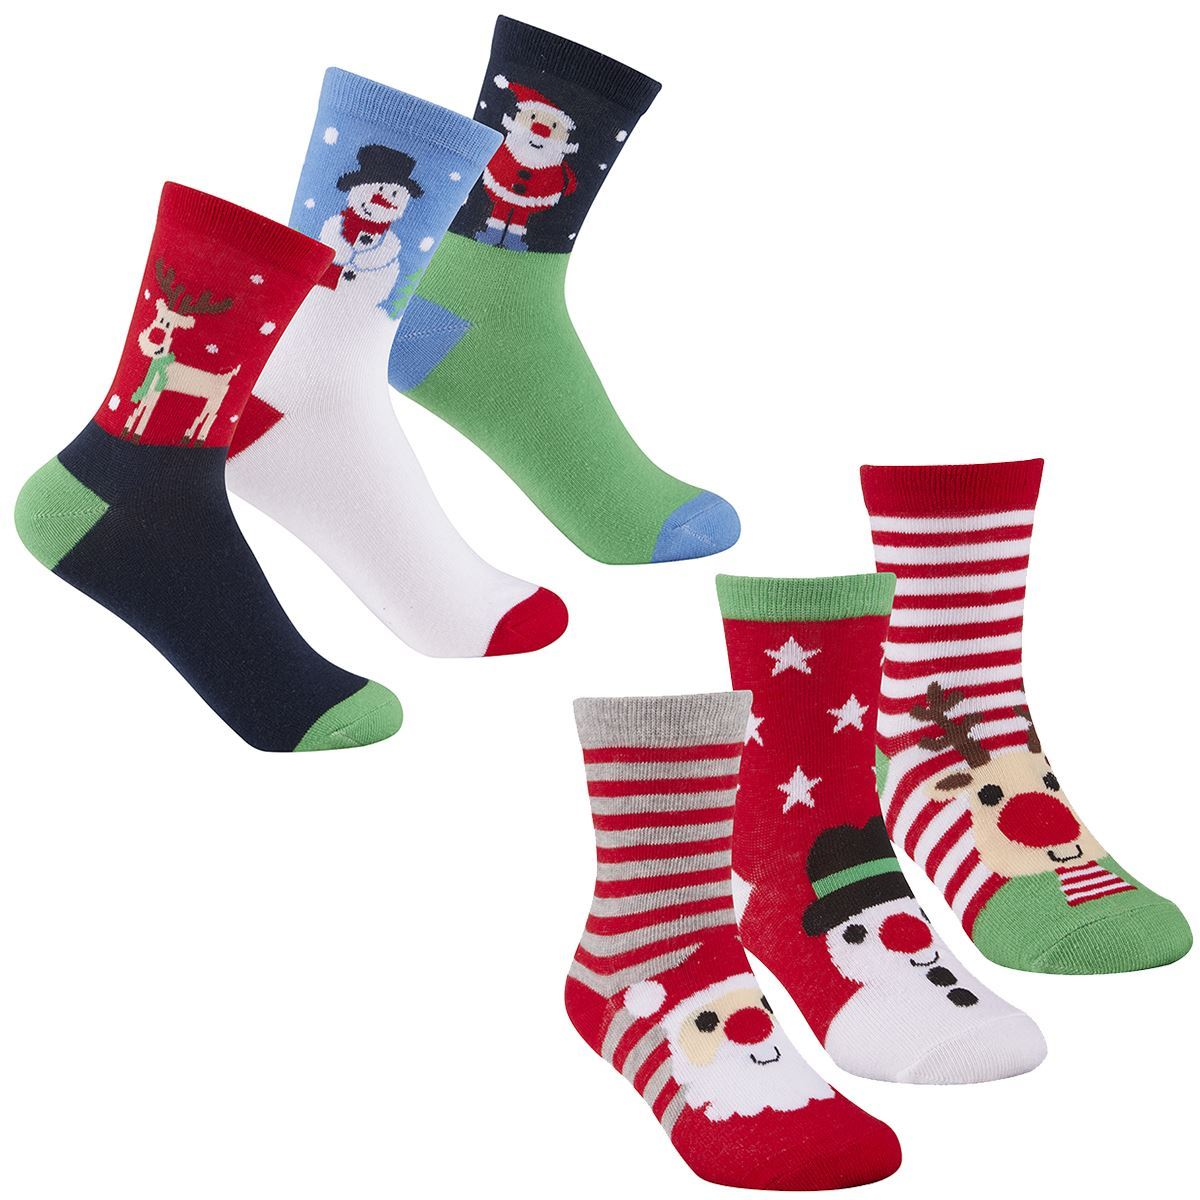 Pack Of 6 Kids Christmas Socks,Children's Novelty Xmas Stocking ...